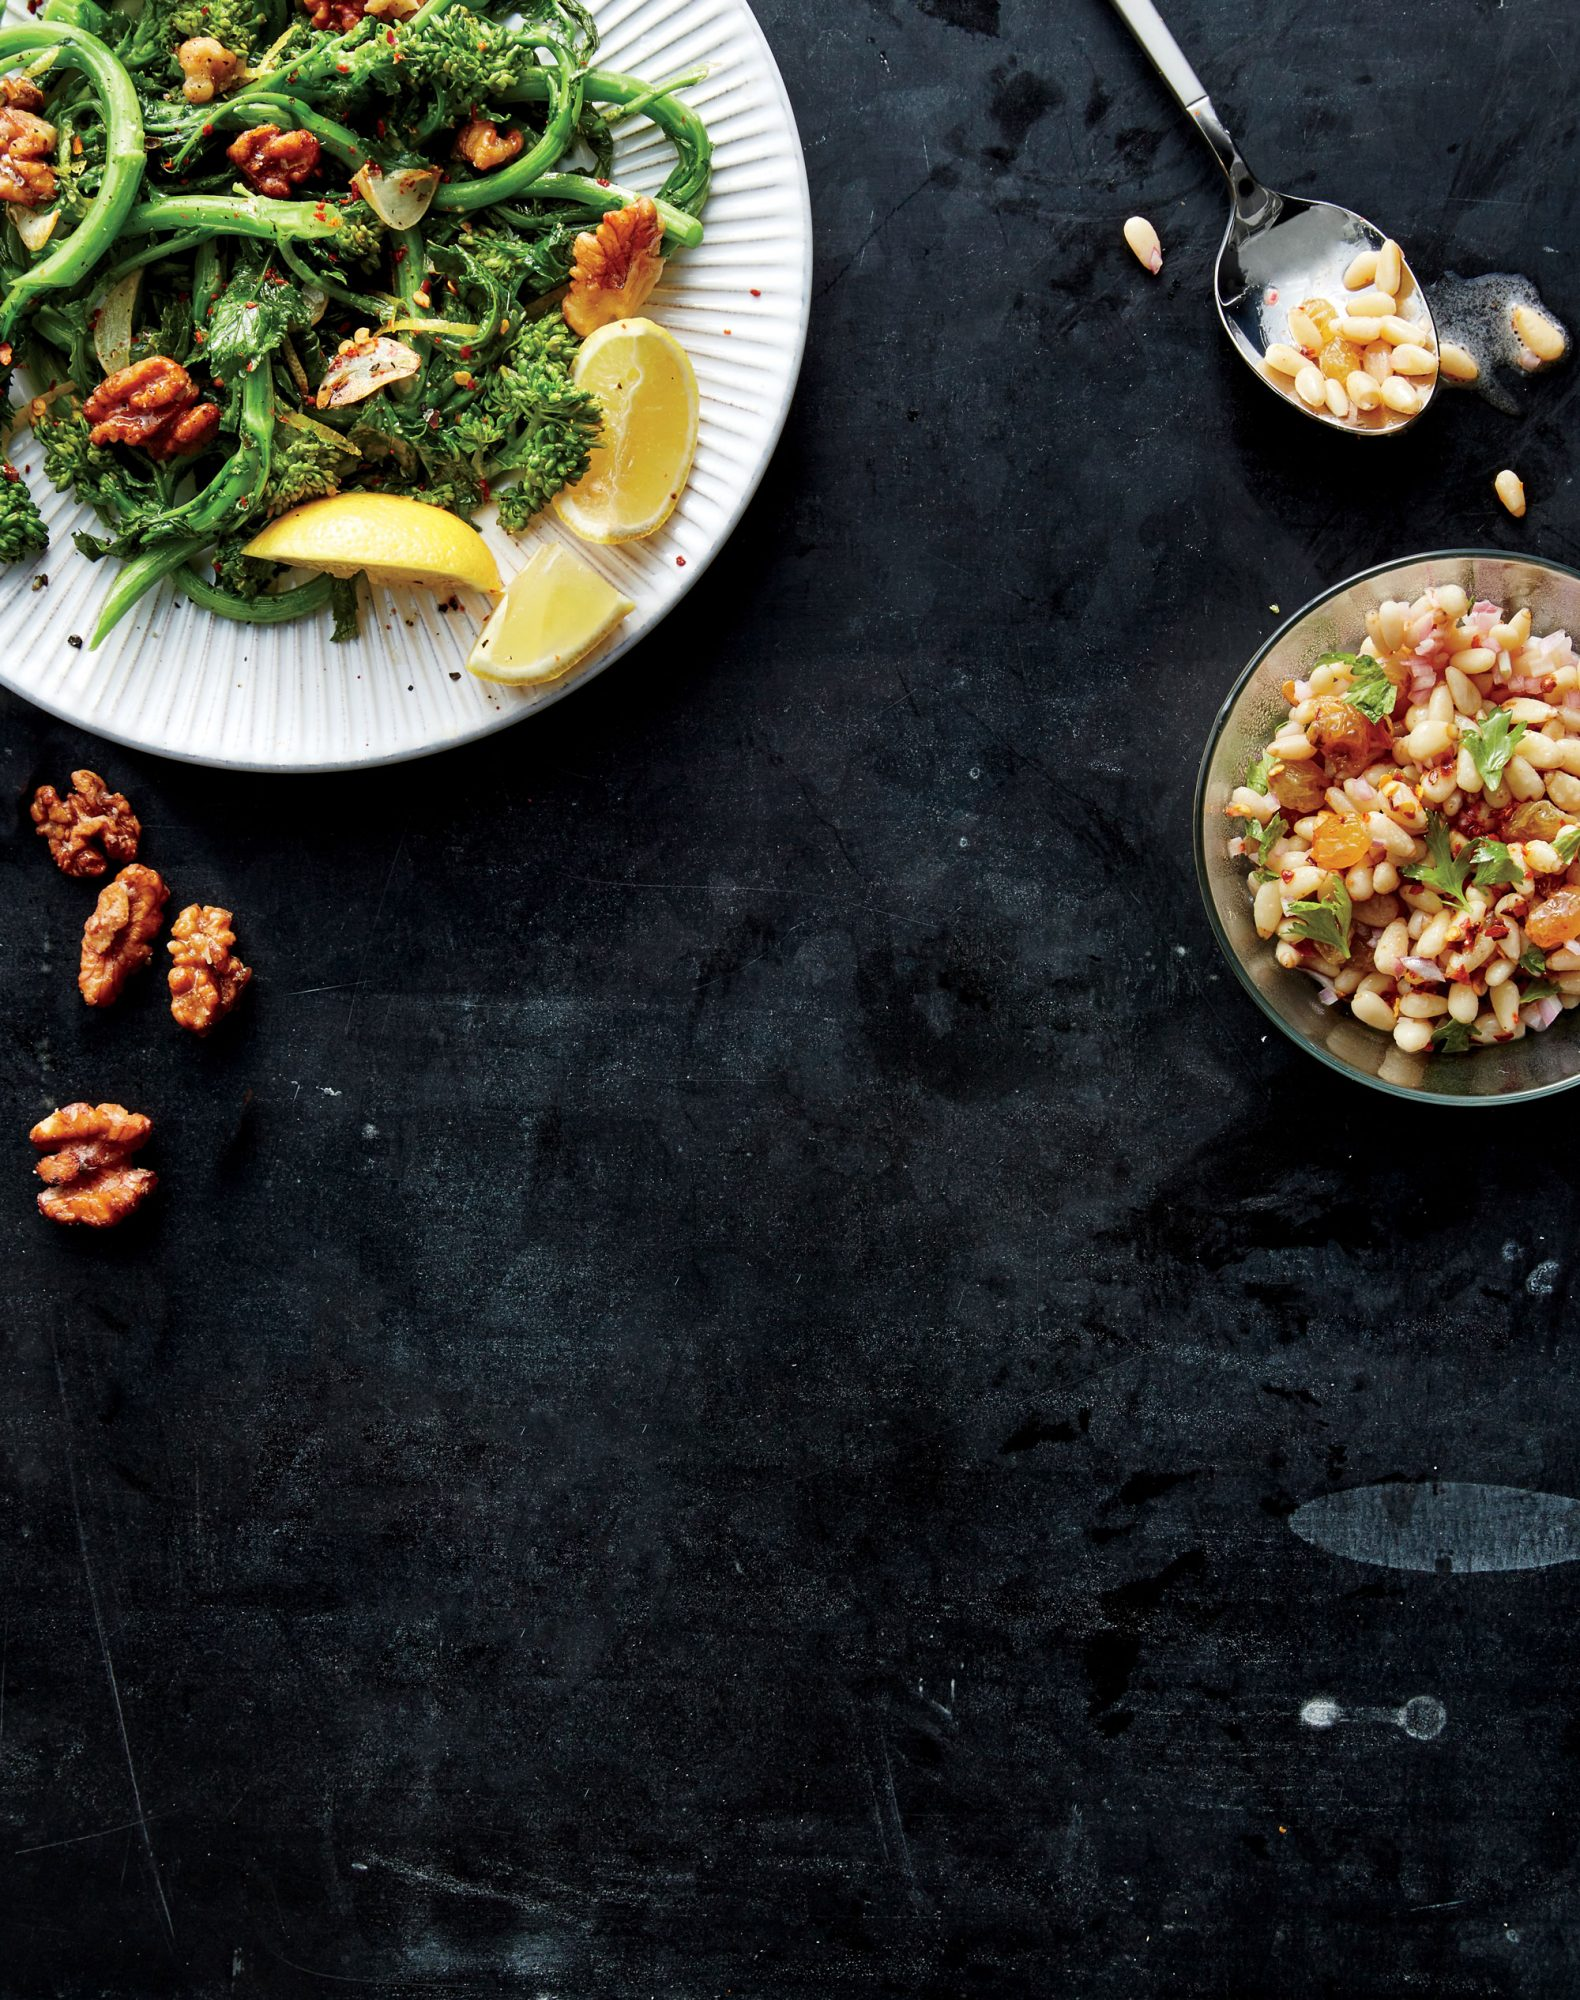 Spicy Broccoli Rabe with Fried Walnuts